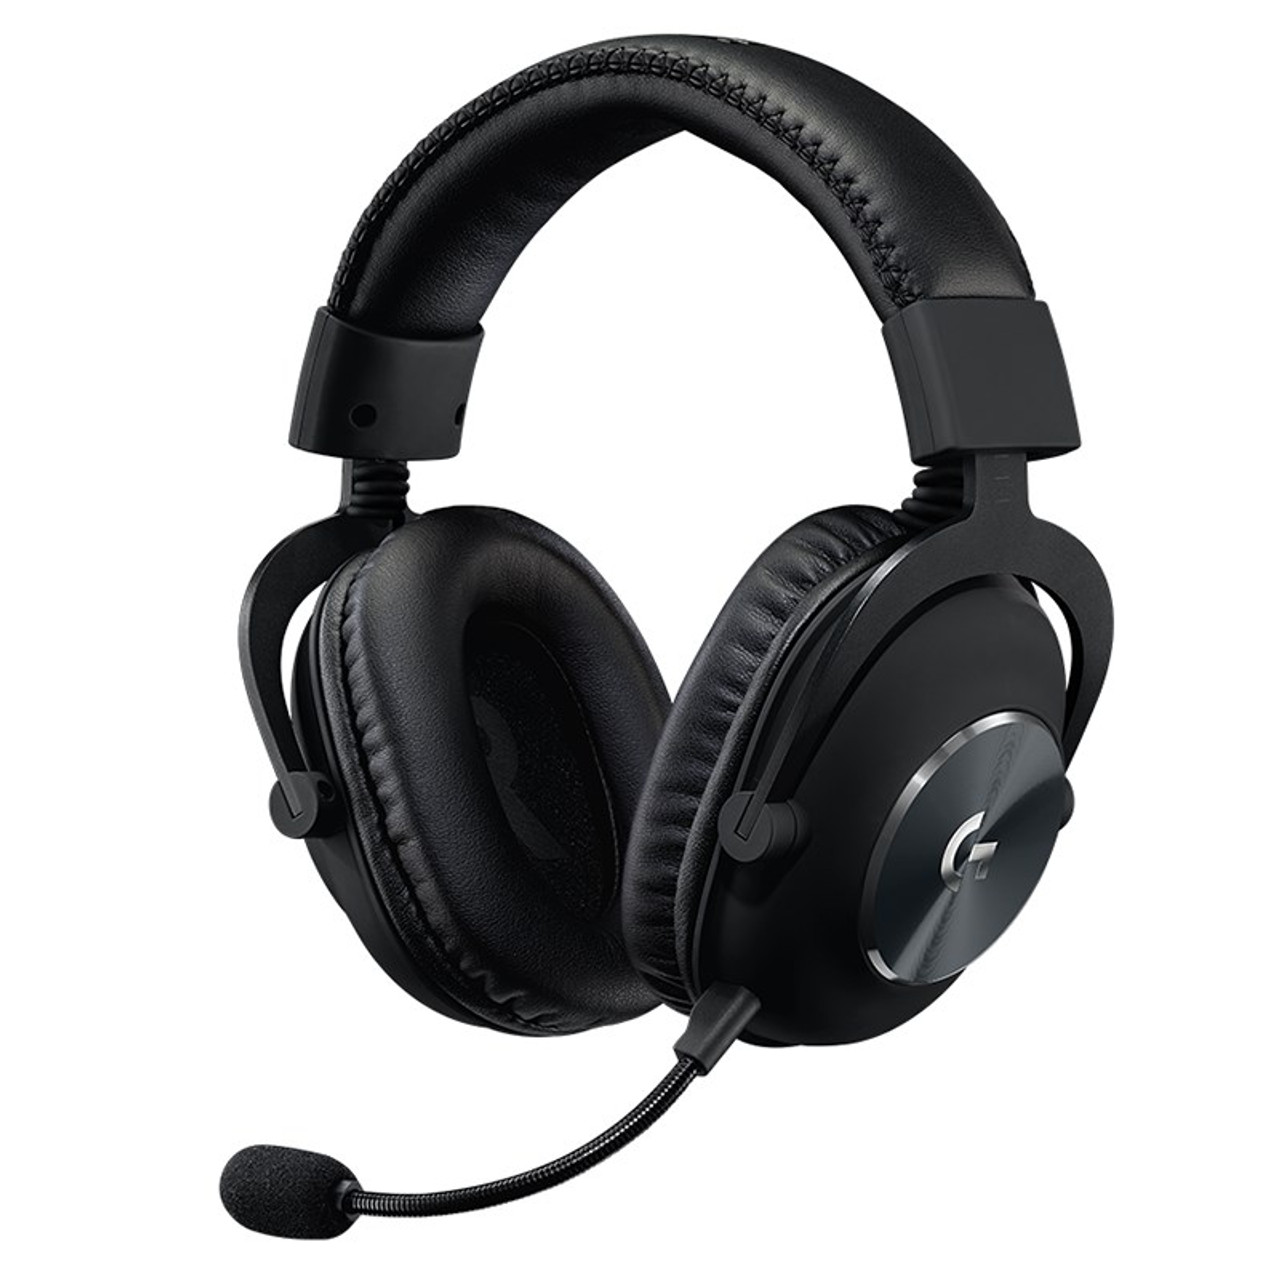 Image for Logitech G Pro Gaming Headset with Passive Noise Cancellation CX Computer Superstore